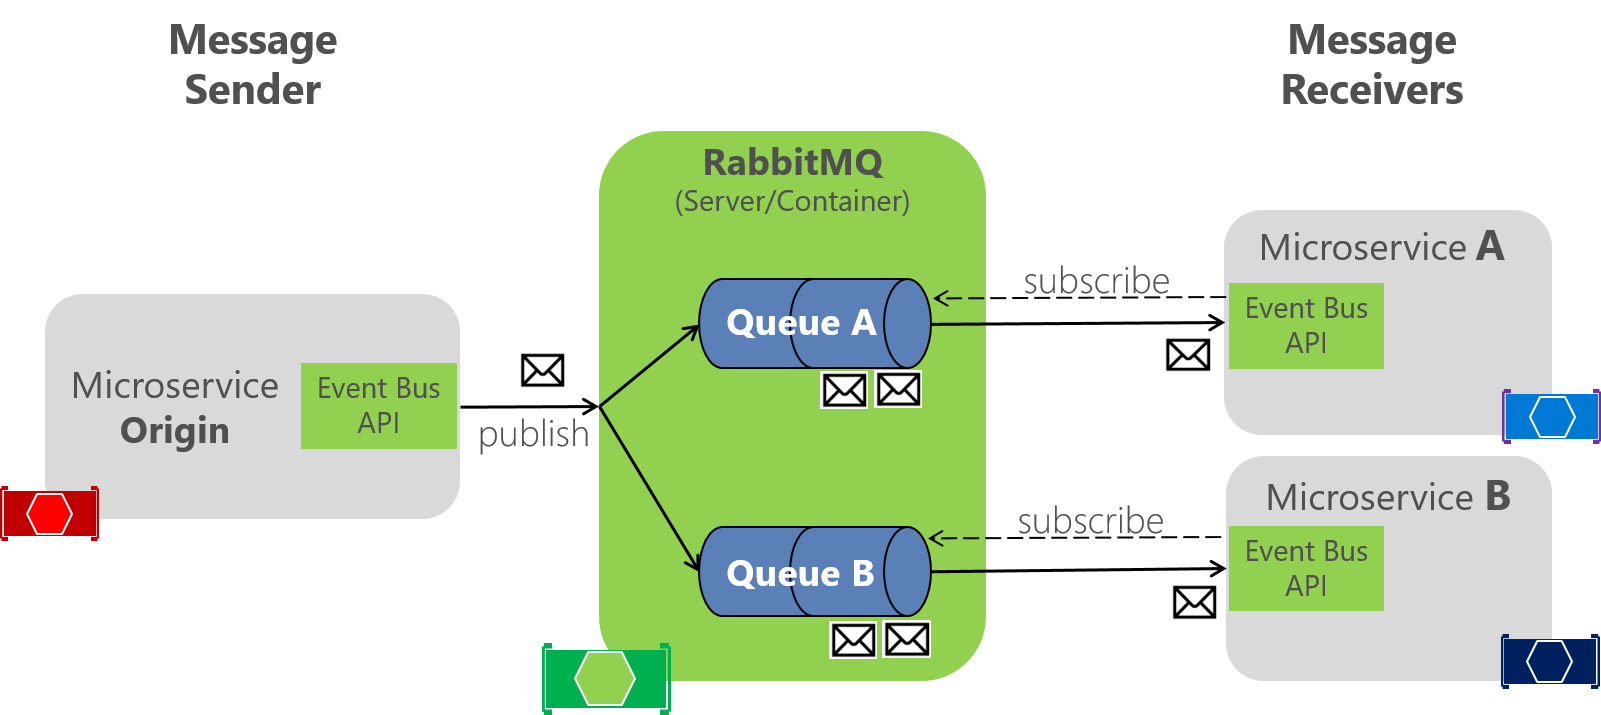 Implementing An Event Bus With Rabbitmq For The Development Or